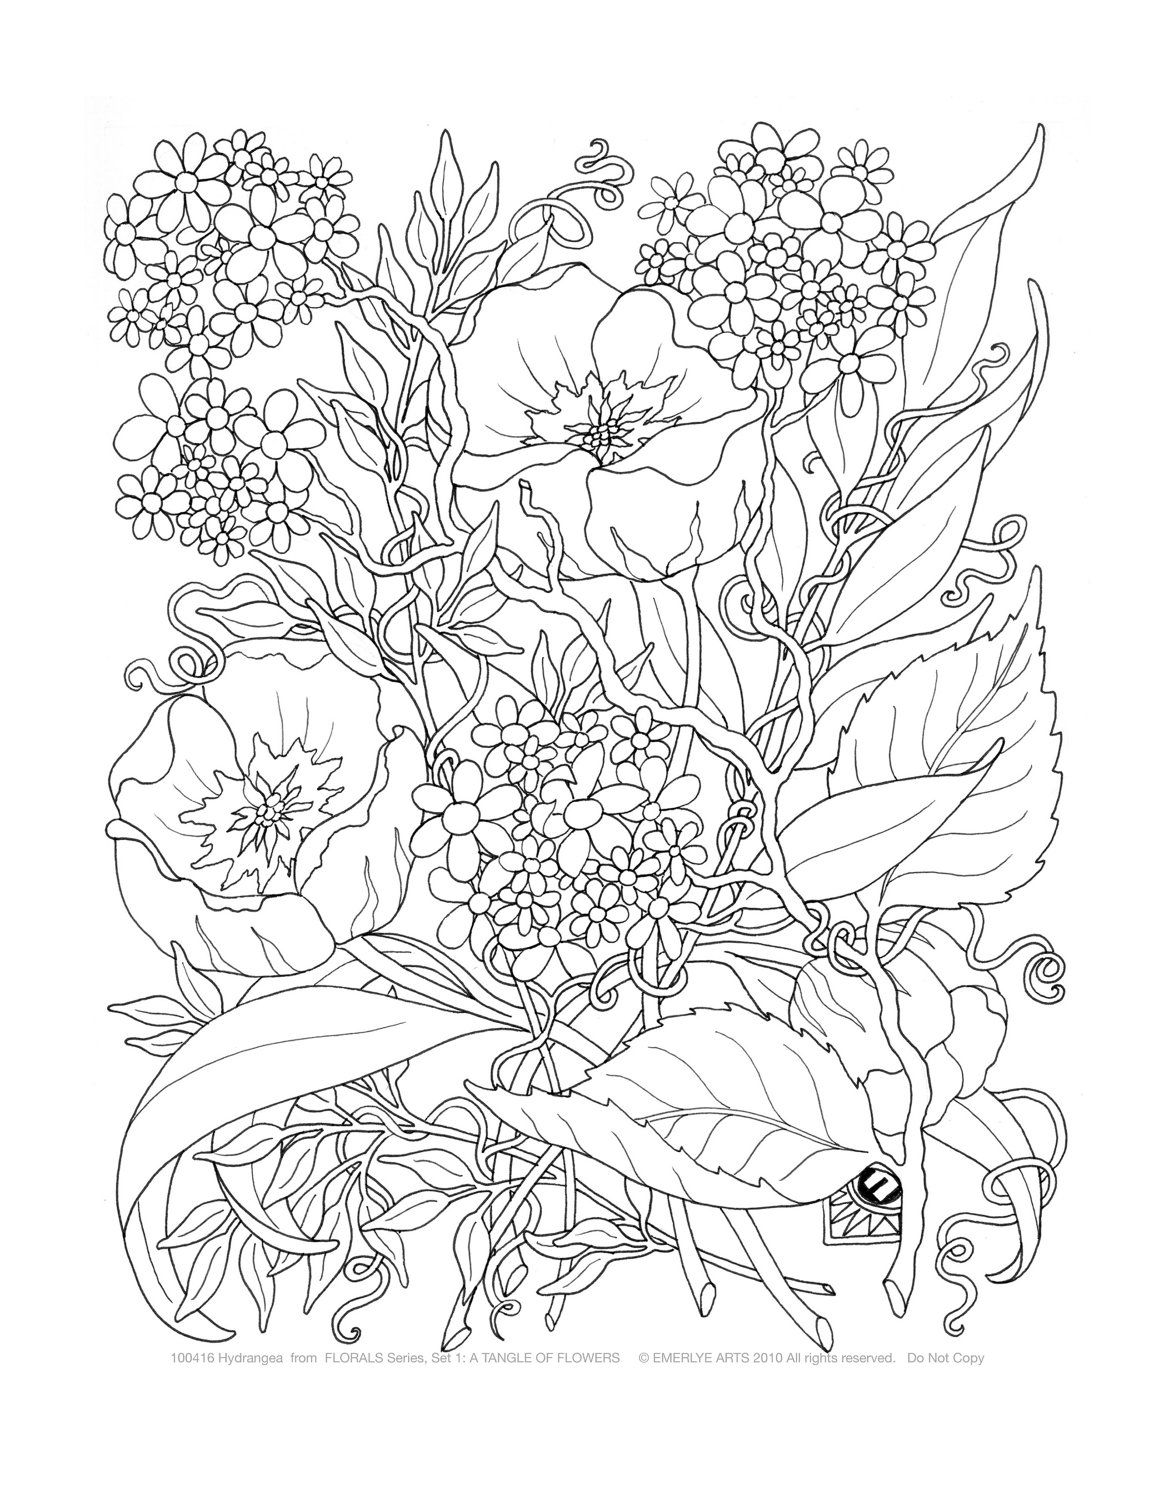 Printable drawing pages for adults - Adult Coloring Adult Coloring Pages A Tangle Of Flowers Set Of 8 By Emerlyearts